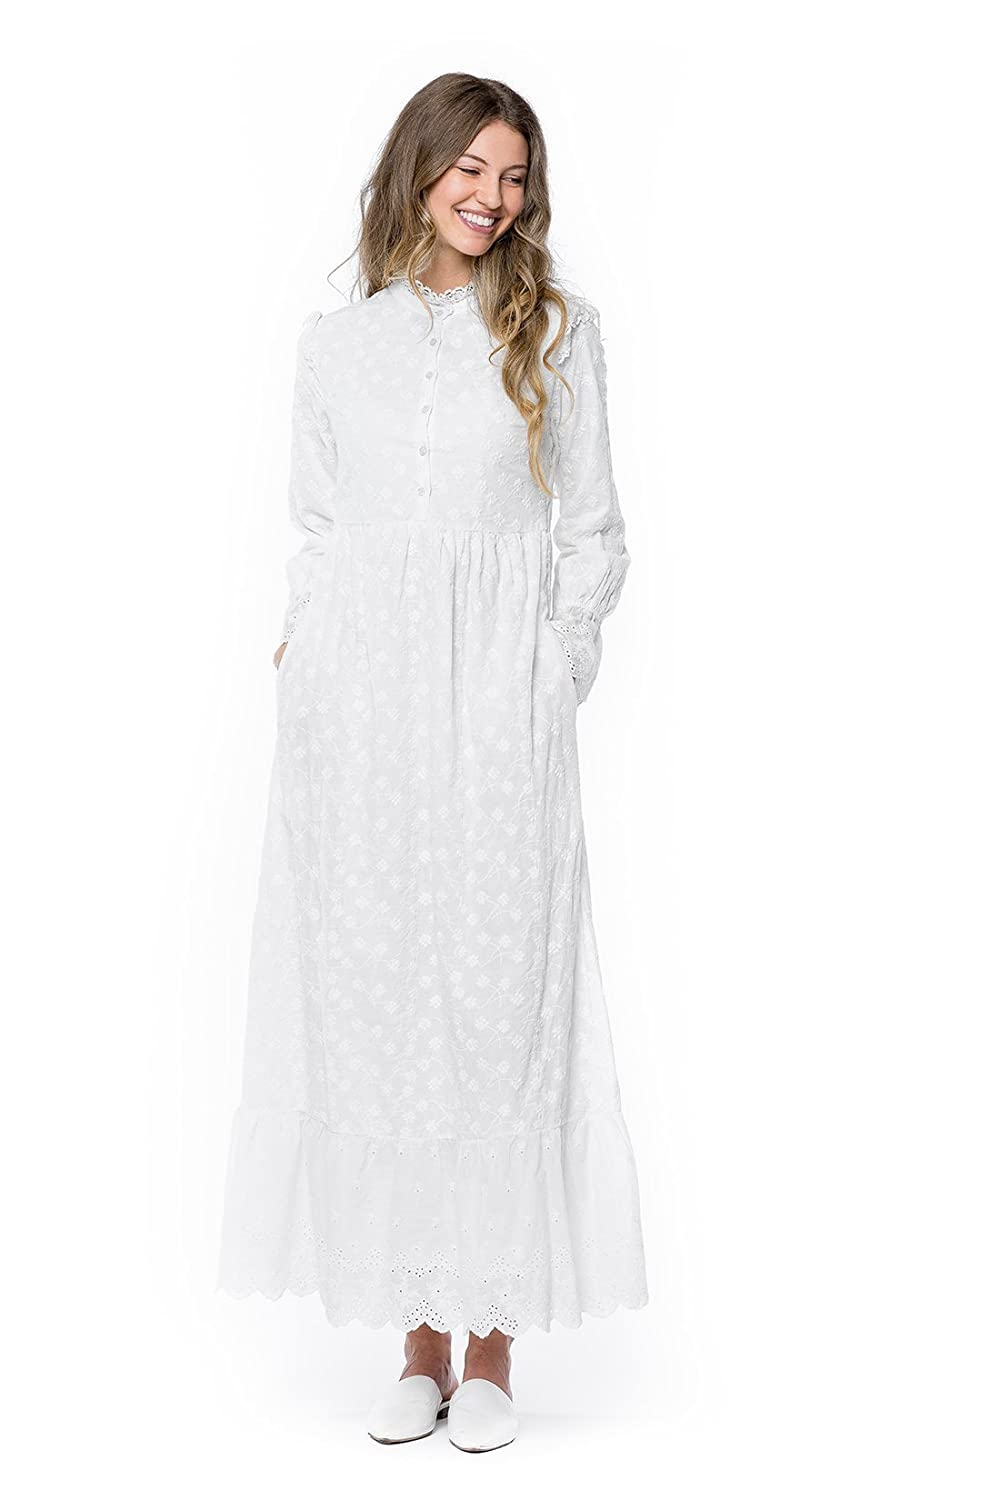 1920s Downton Abbey Dresses ModWhite Magnolia White Temple Dress $89.00 AT vintagedancer.com